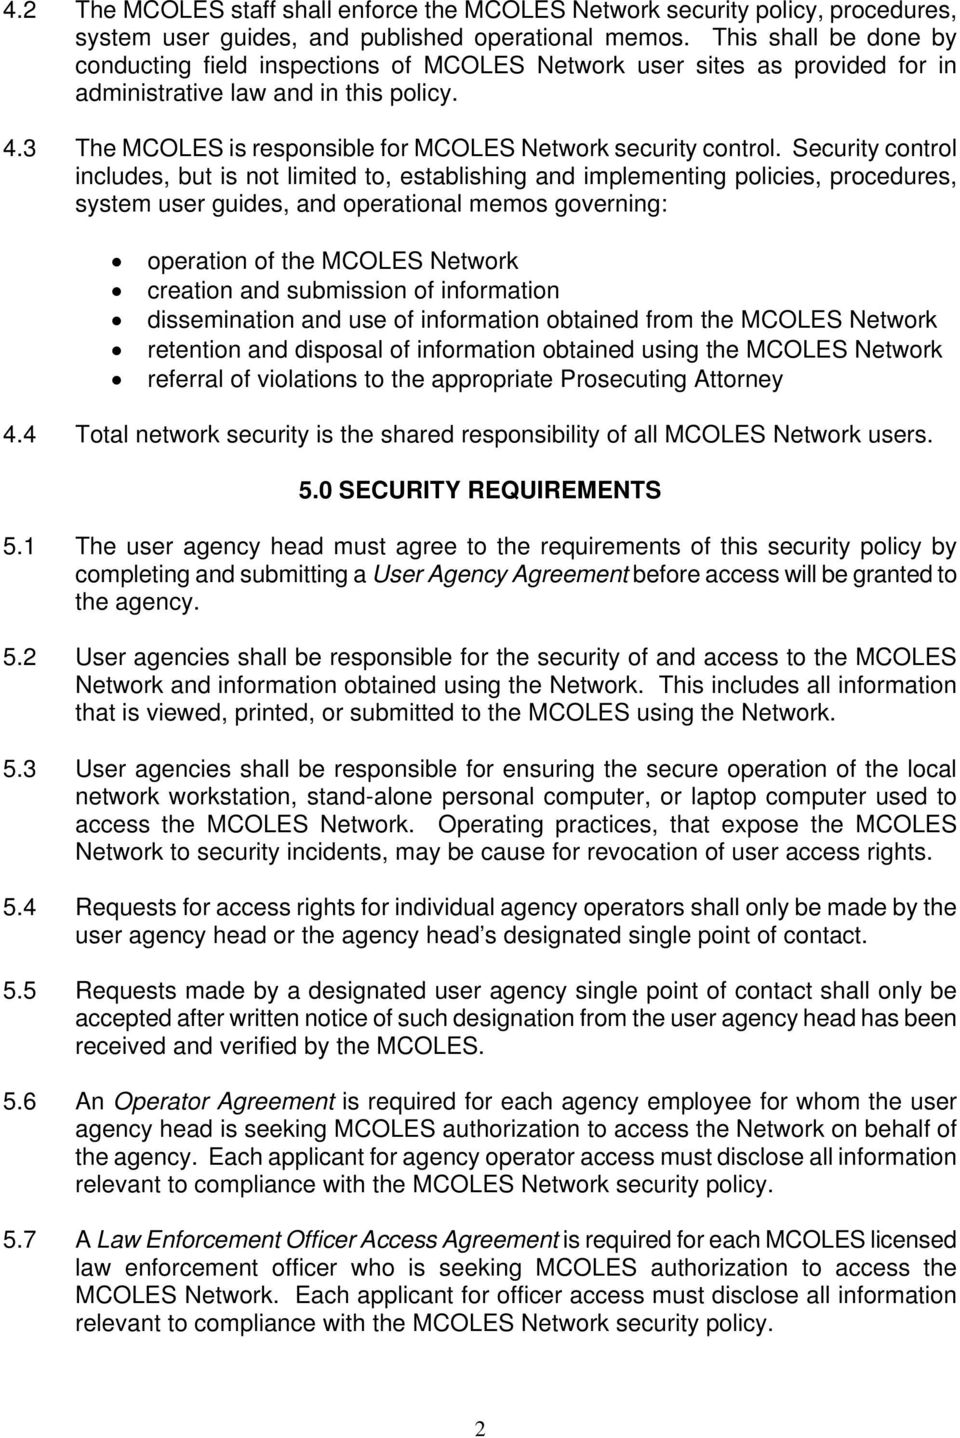 3 The MCOLES is responsible for MCOLES Network security control.